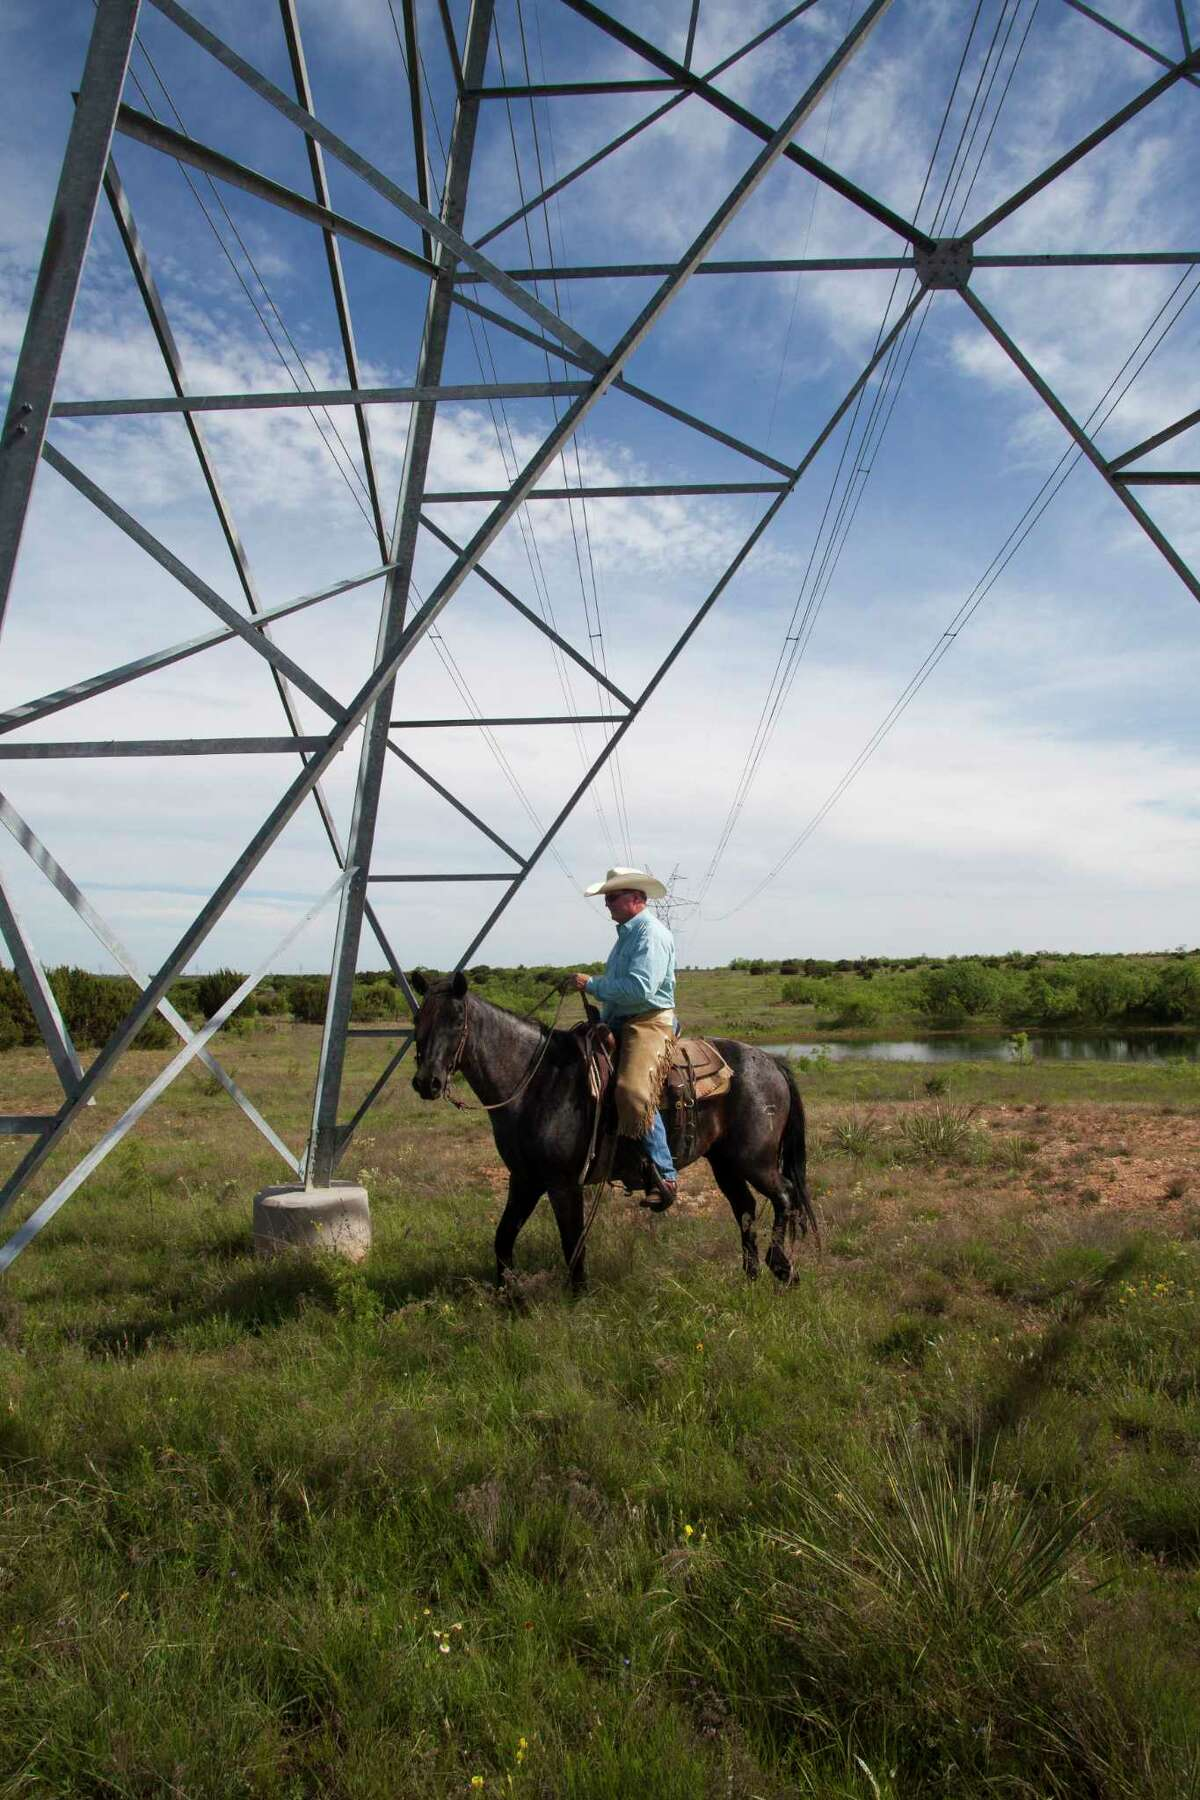 Rancher Richard Thorpe rides underneath an electric utility tower on his land just outside of Winters, TX.